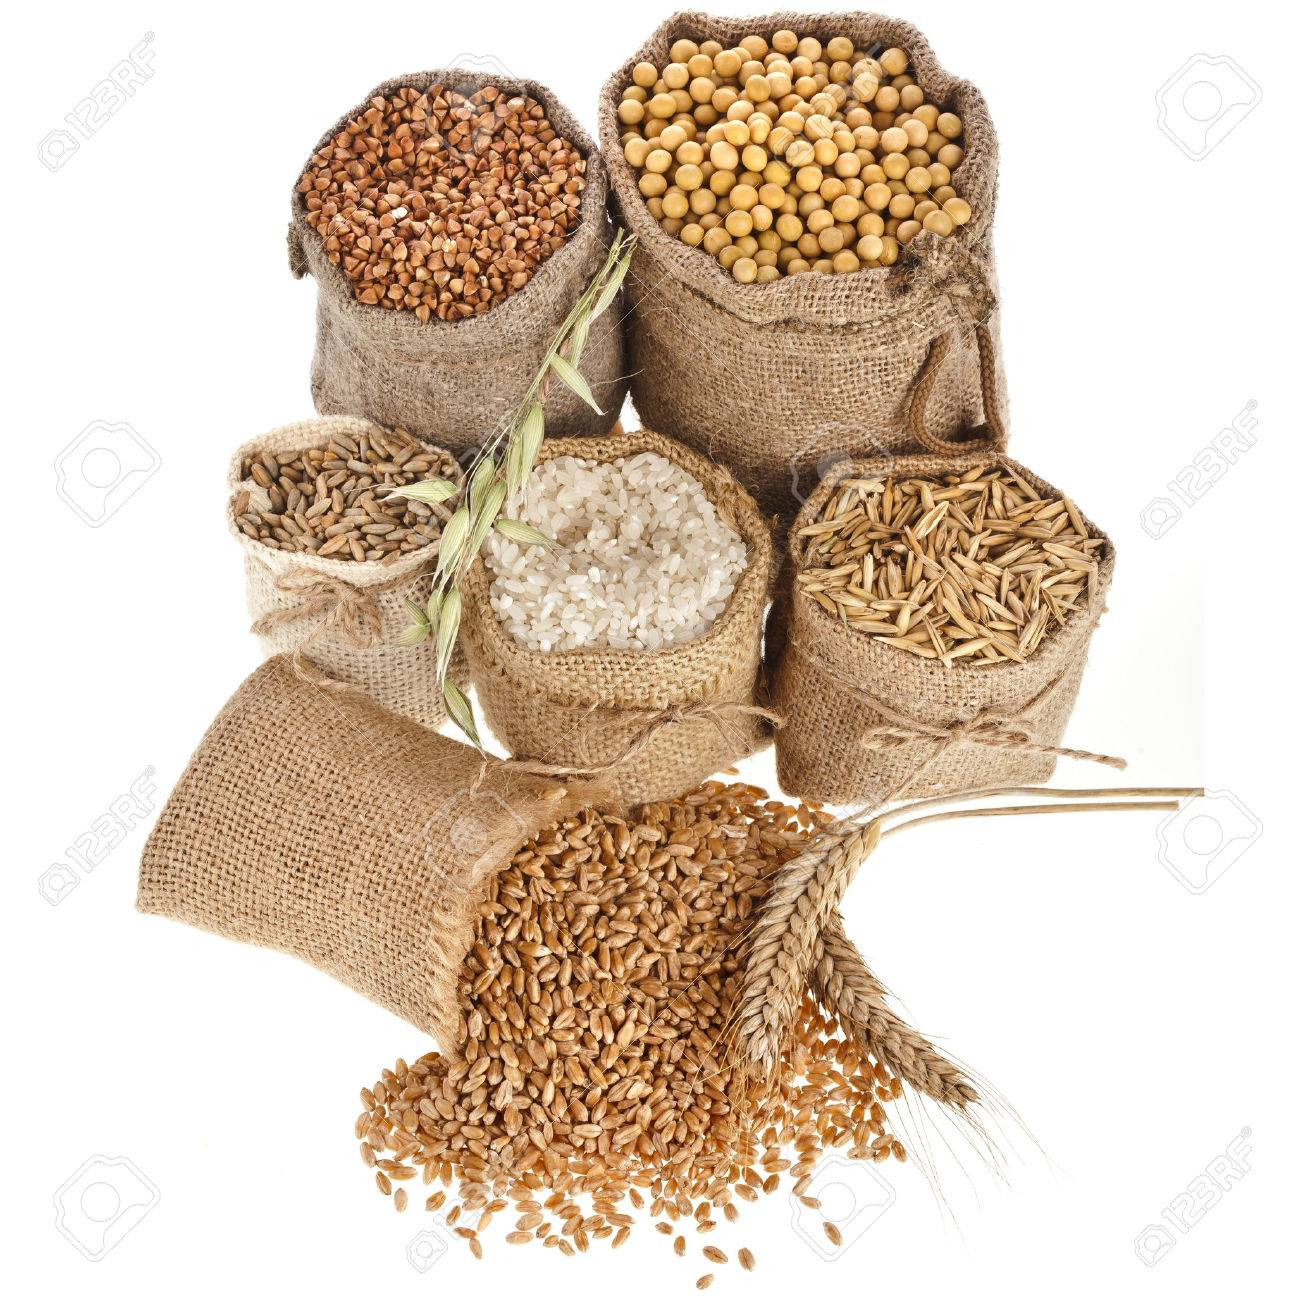 groats seed meal and grains in bags close up isolated on a white background - 29436417